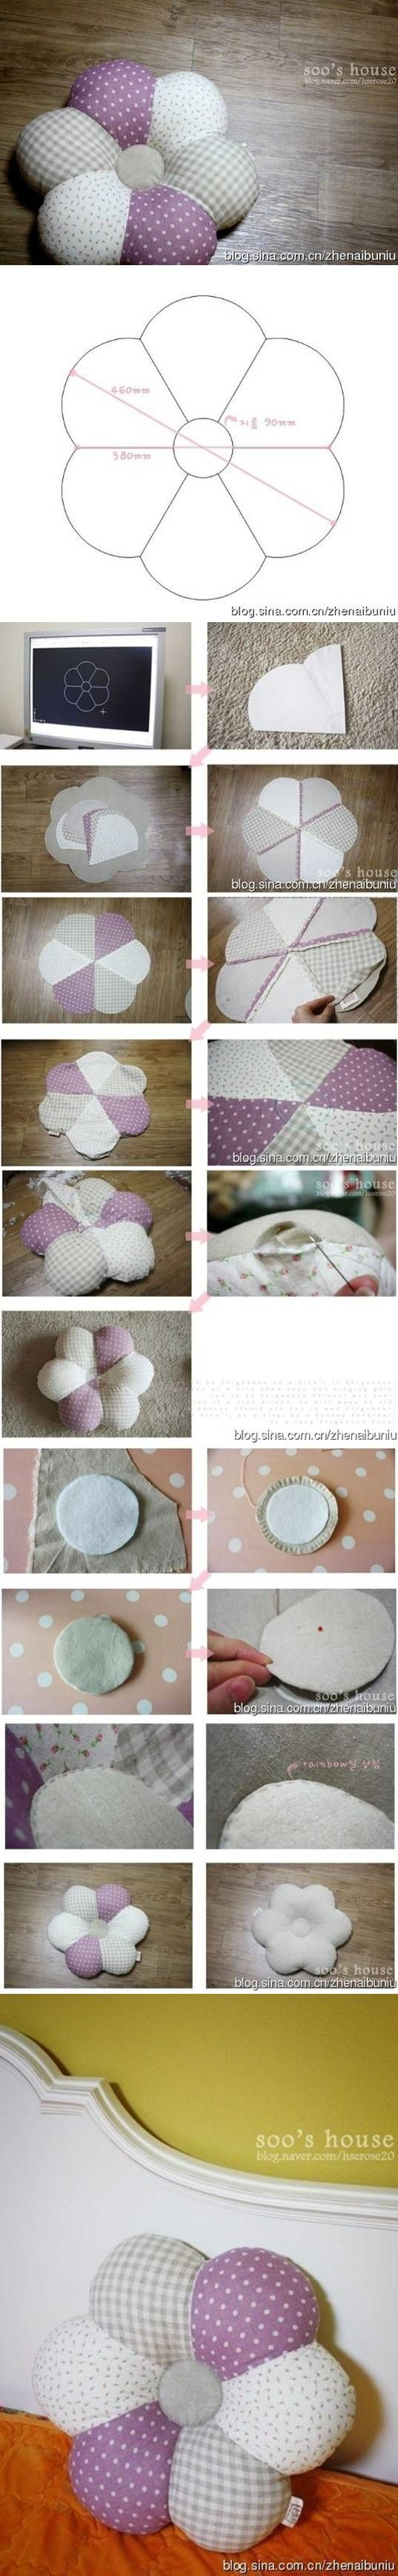 DIY Flower Style Pillow: